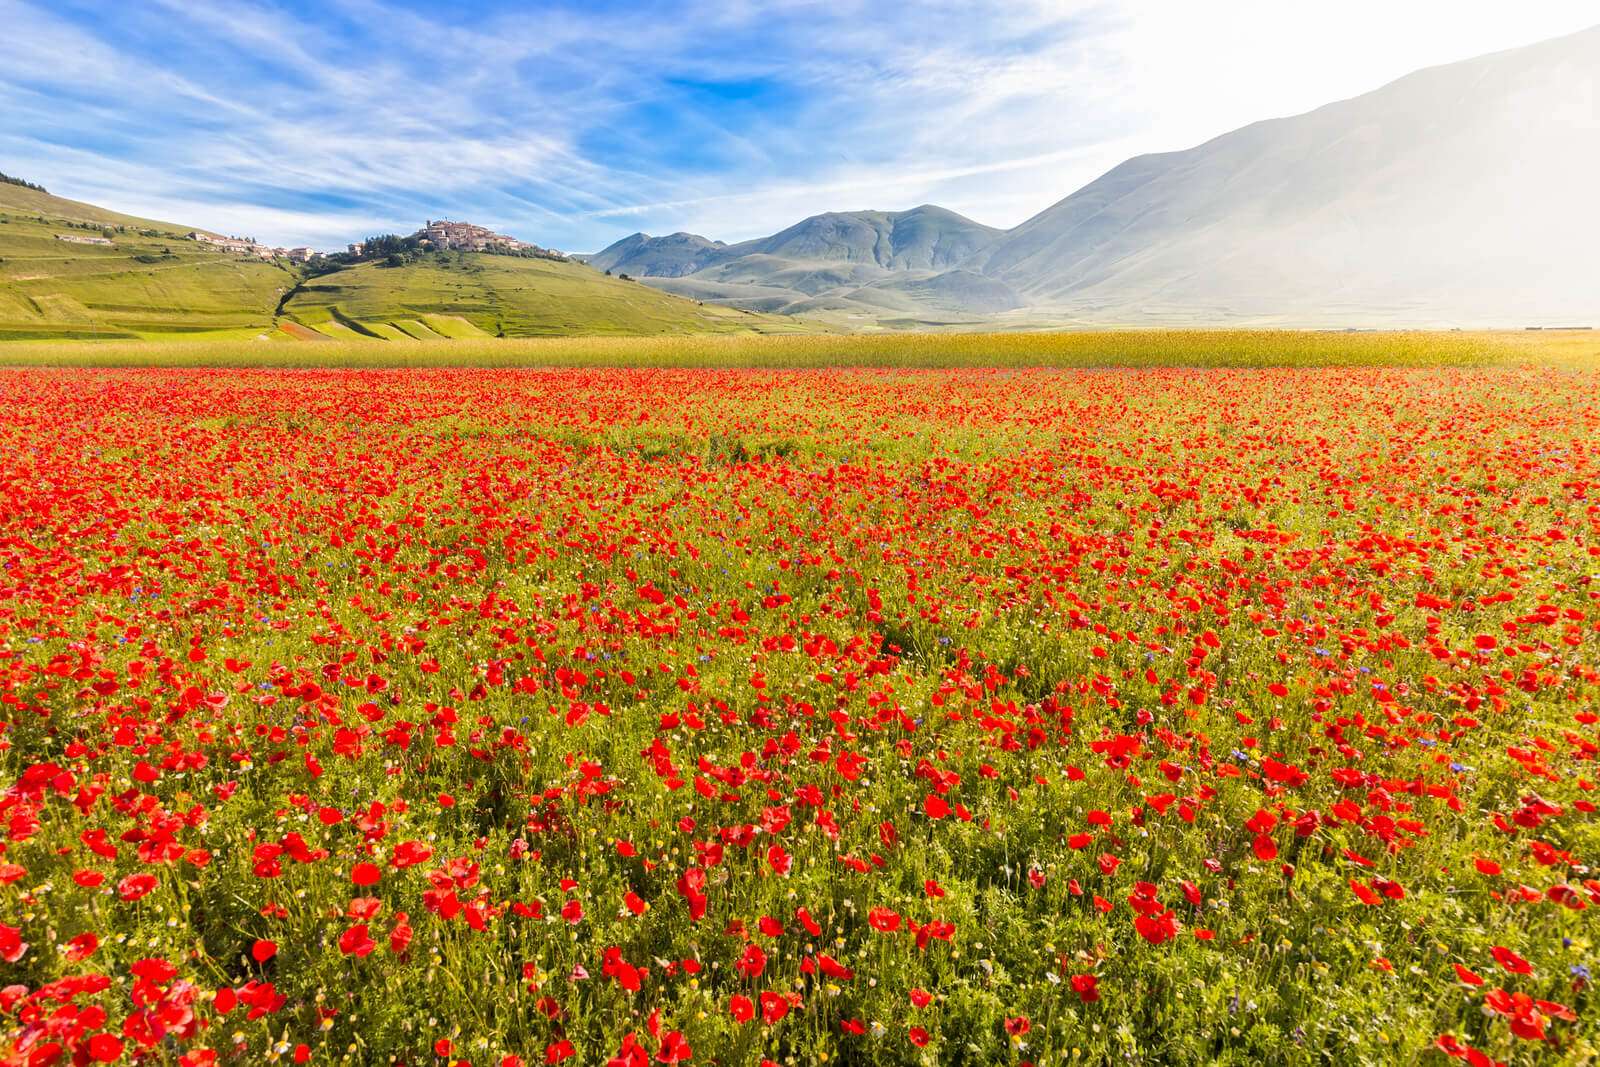 Colorful blooming of flowers at Pian Grande near Castelluccio di Norcia